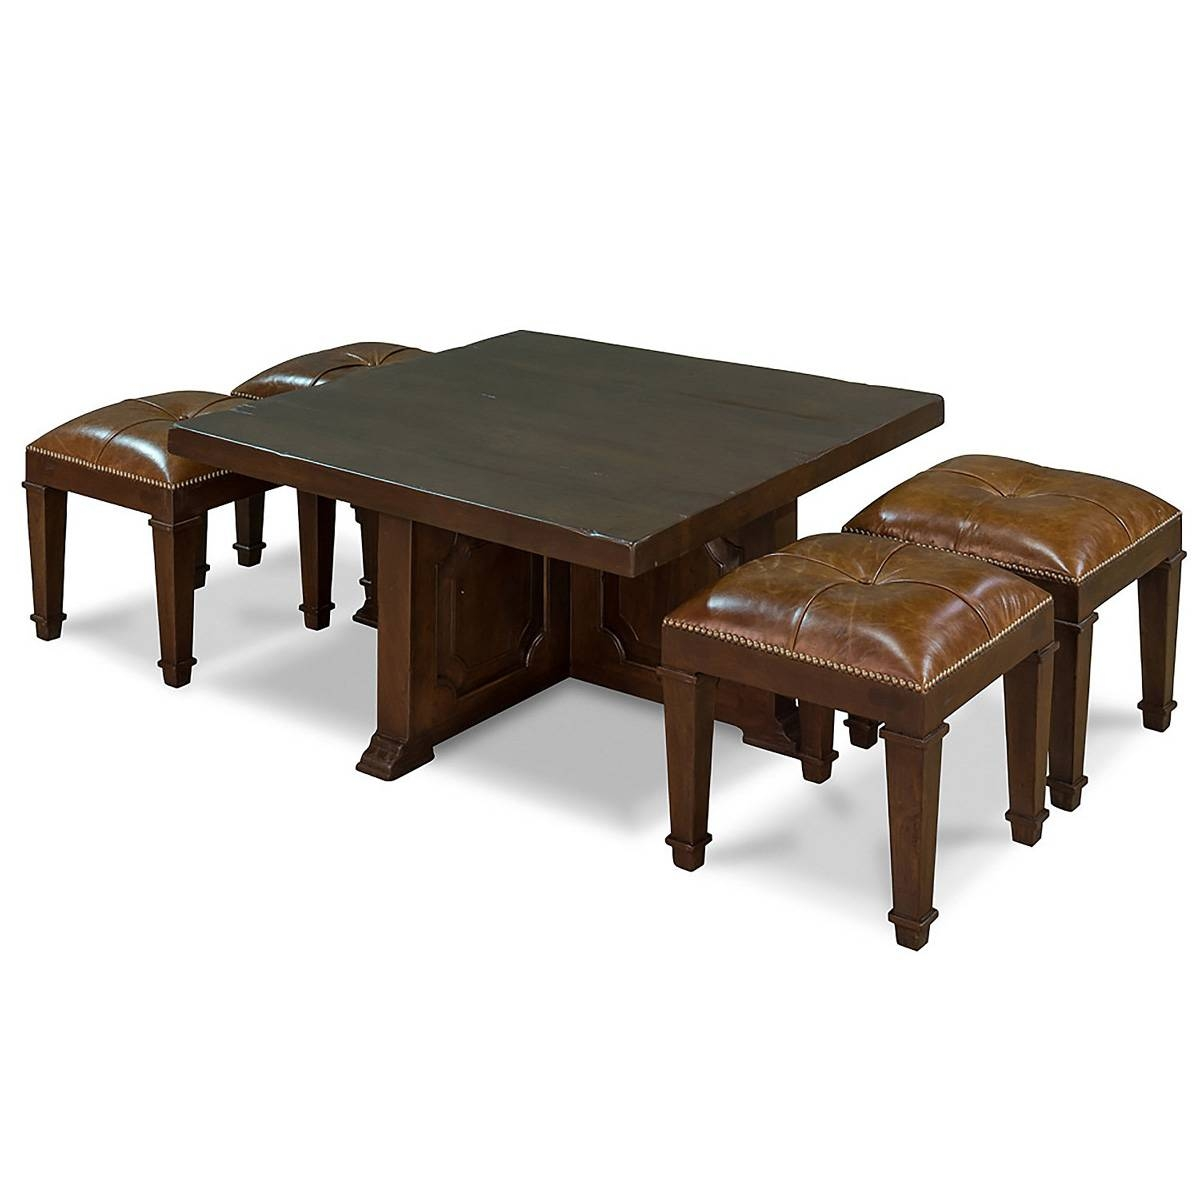 Coffee Table With 4 Nesting Stools - So That's Cool within Coffee Tables With Nesting Stools (Image 9 of 30)